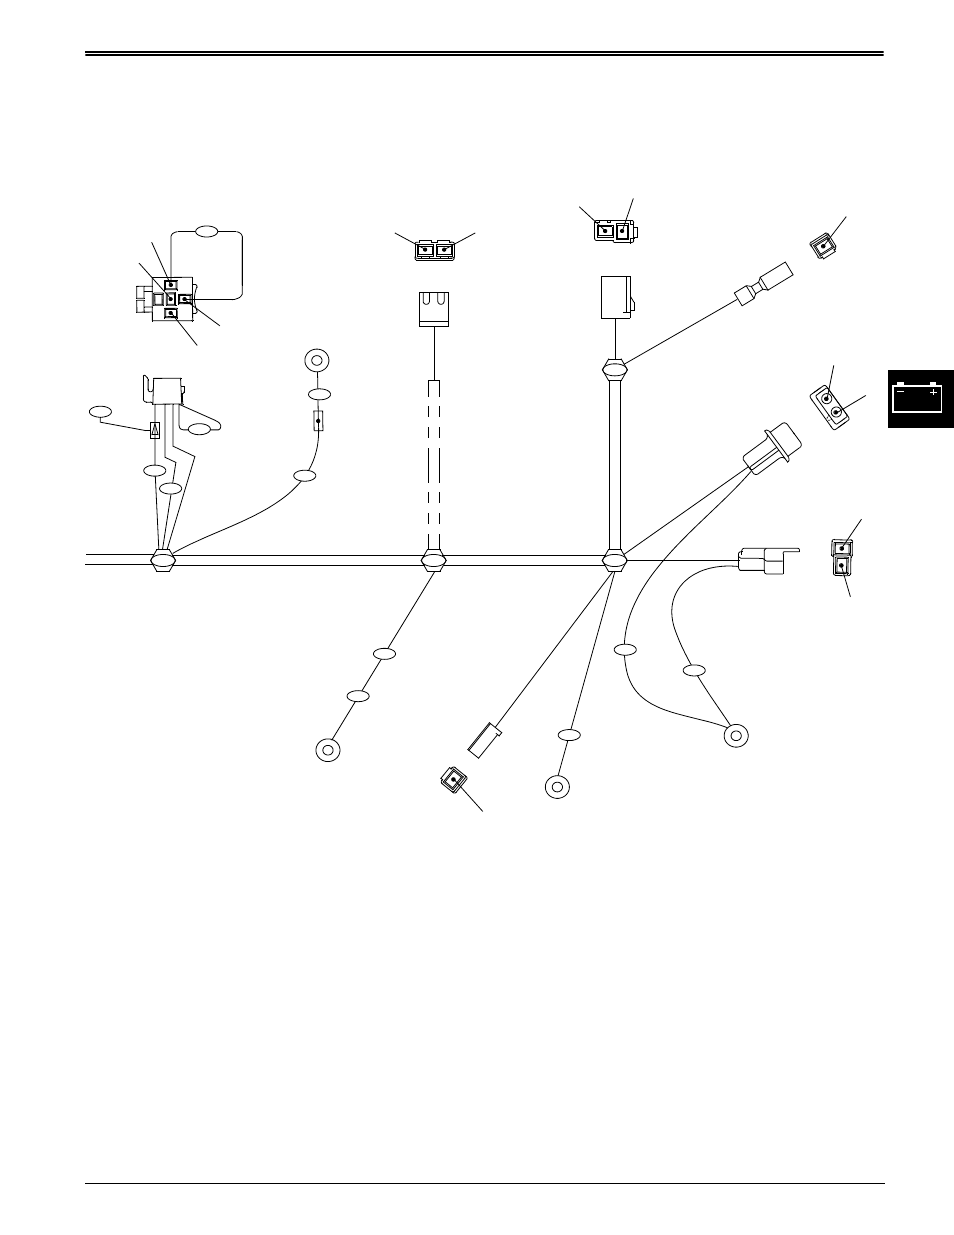 ... medium resolution of wiring harness diagrams electrical john deere stx38  user manual page 97 314 ...